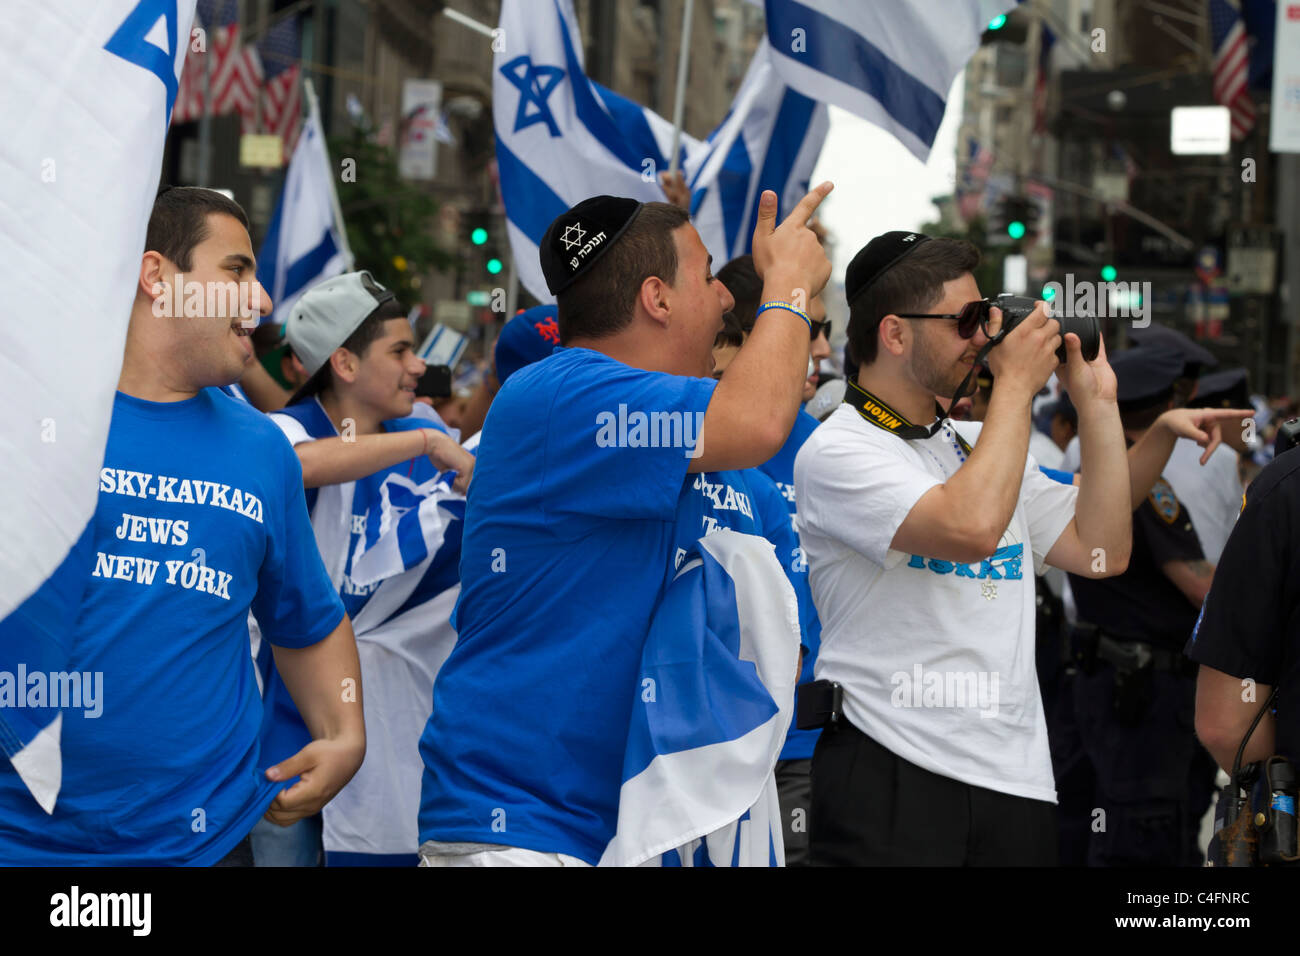 Pro Israel marchers heckle anti-Israel protesters at the 2011 Celebrate Israel Parade on Fifth Avenue in New York - Stock Image